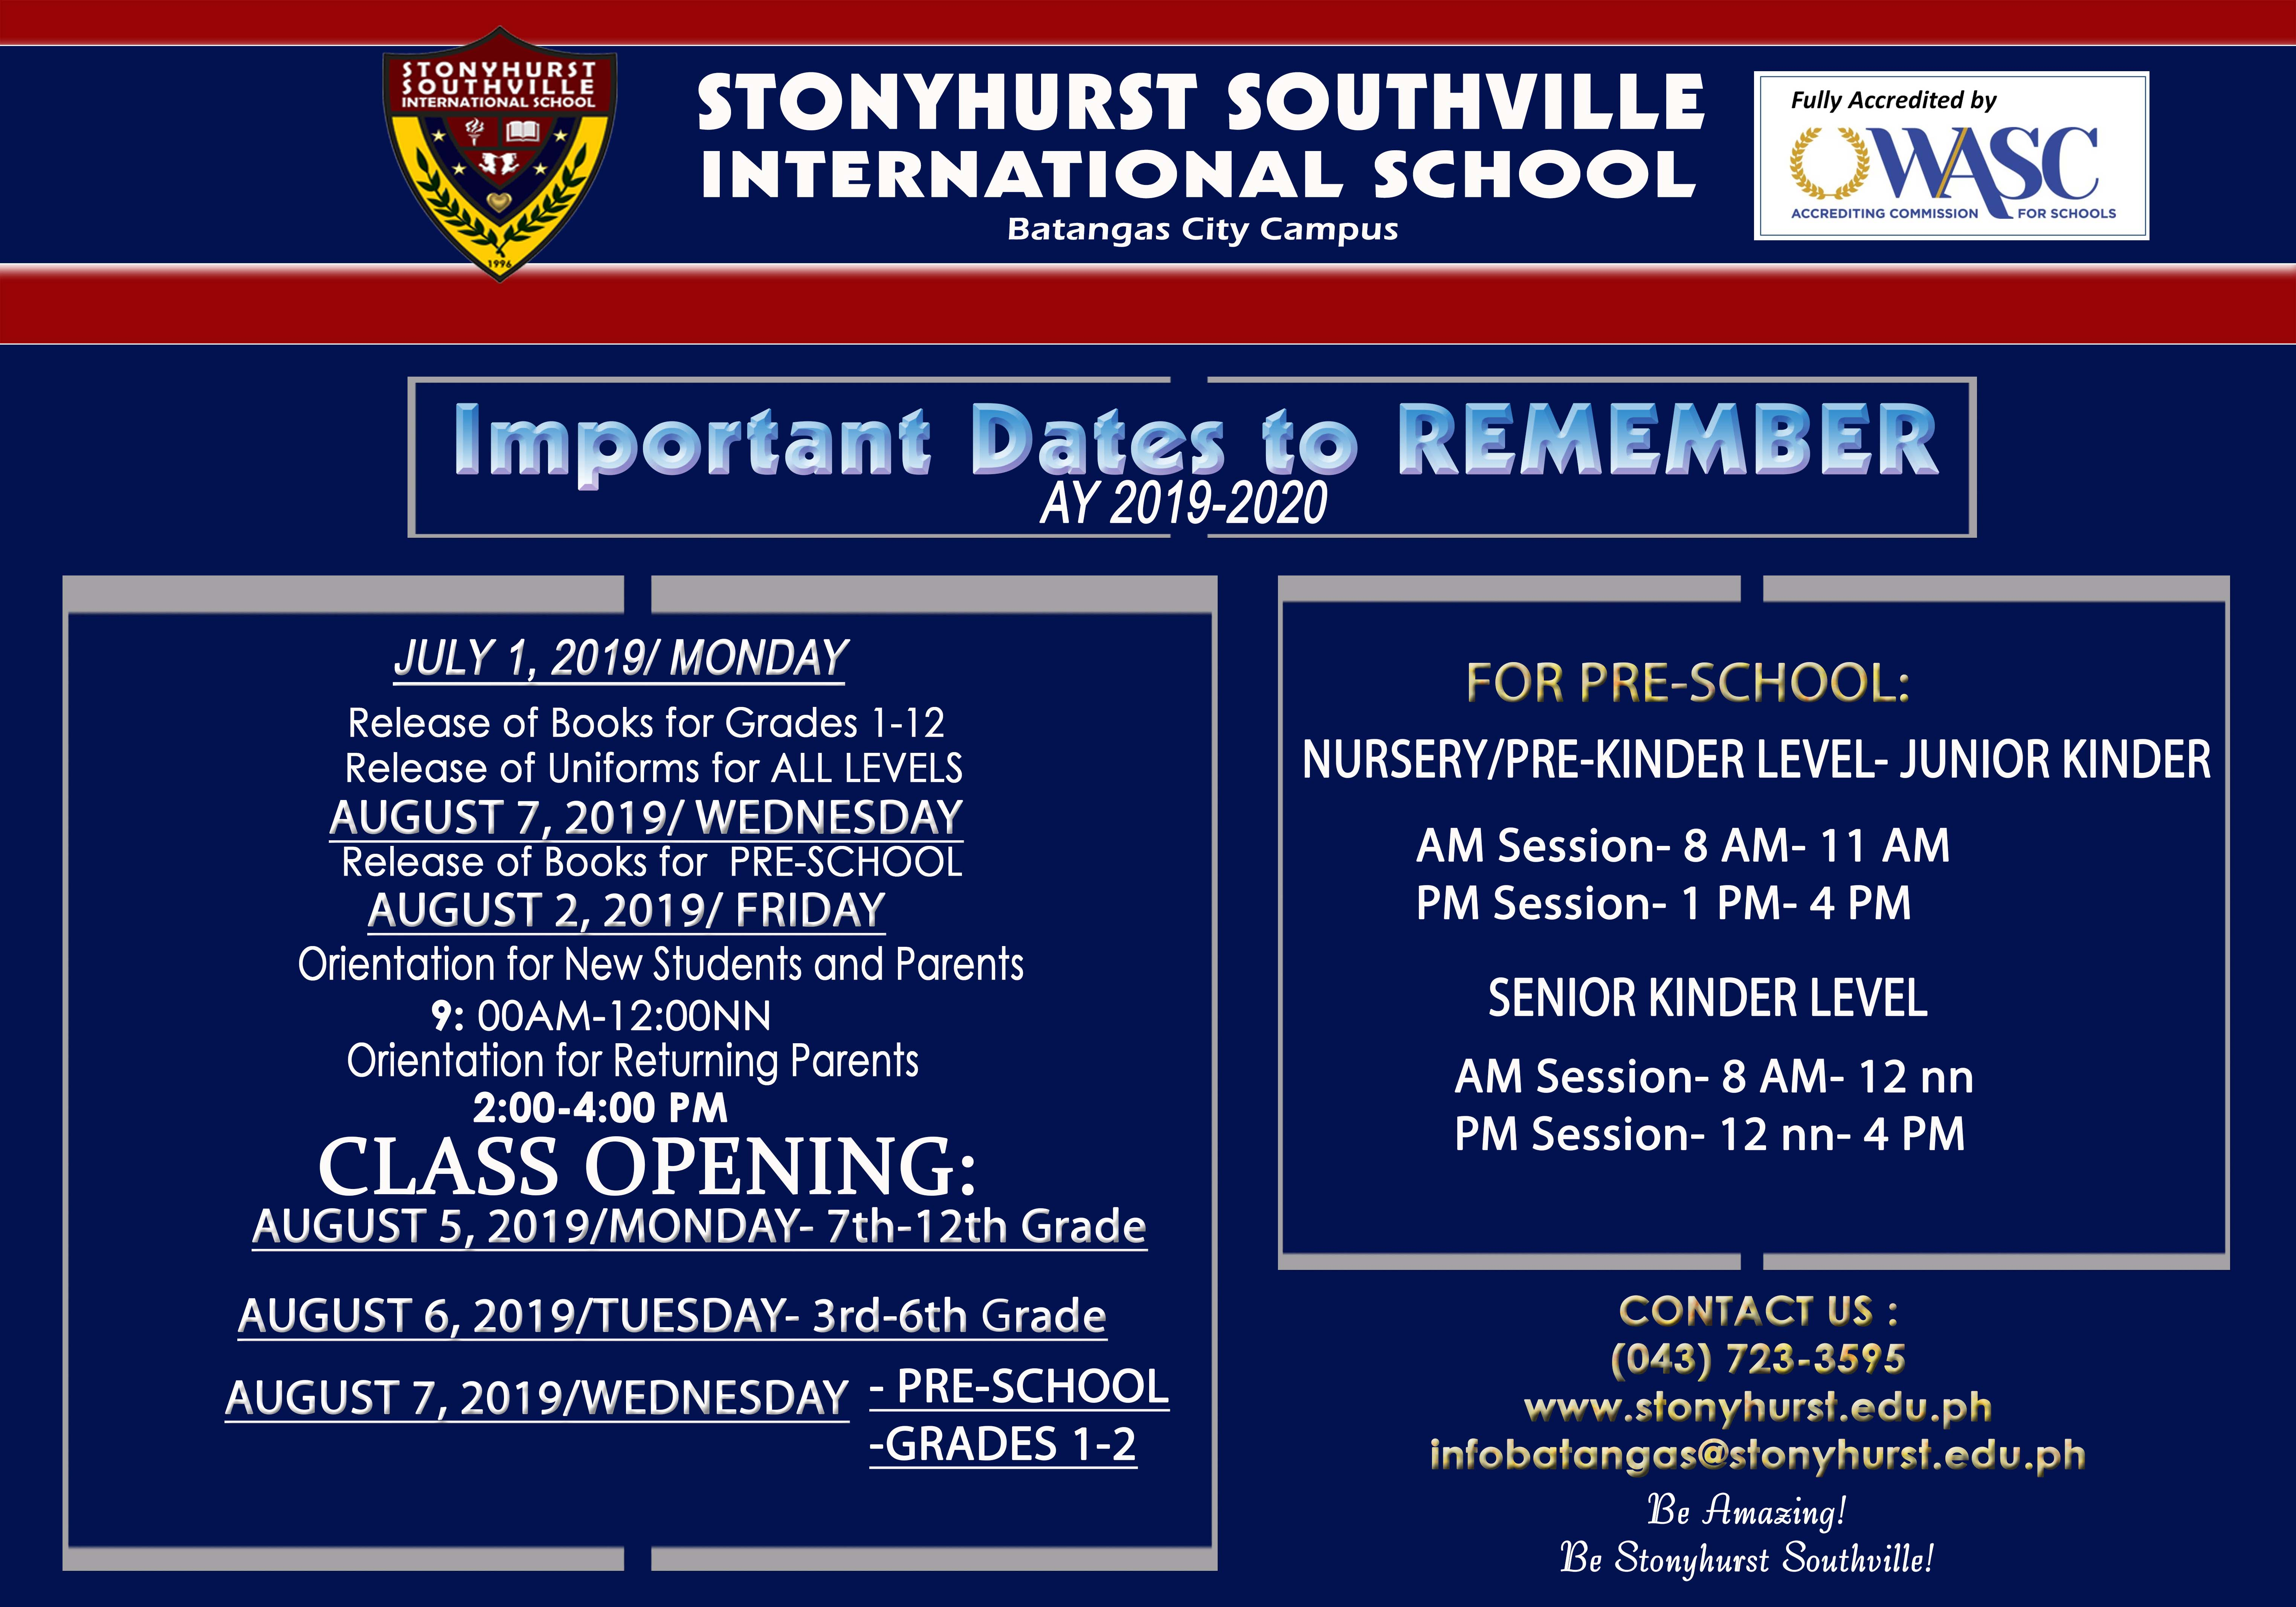 Stonyhurst Southville International School - Top School in Batangas